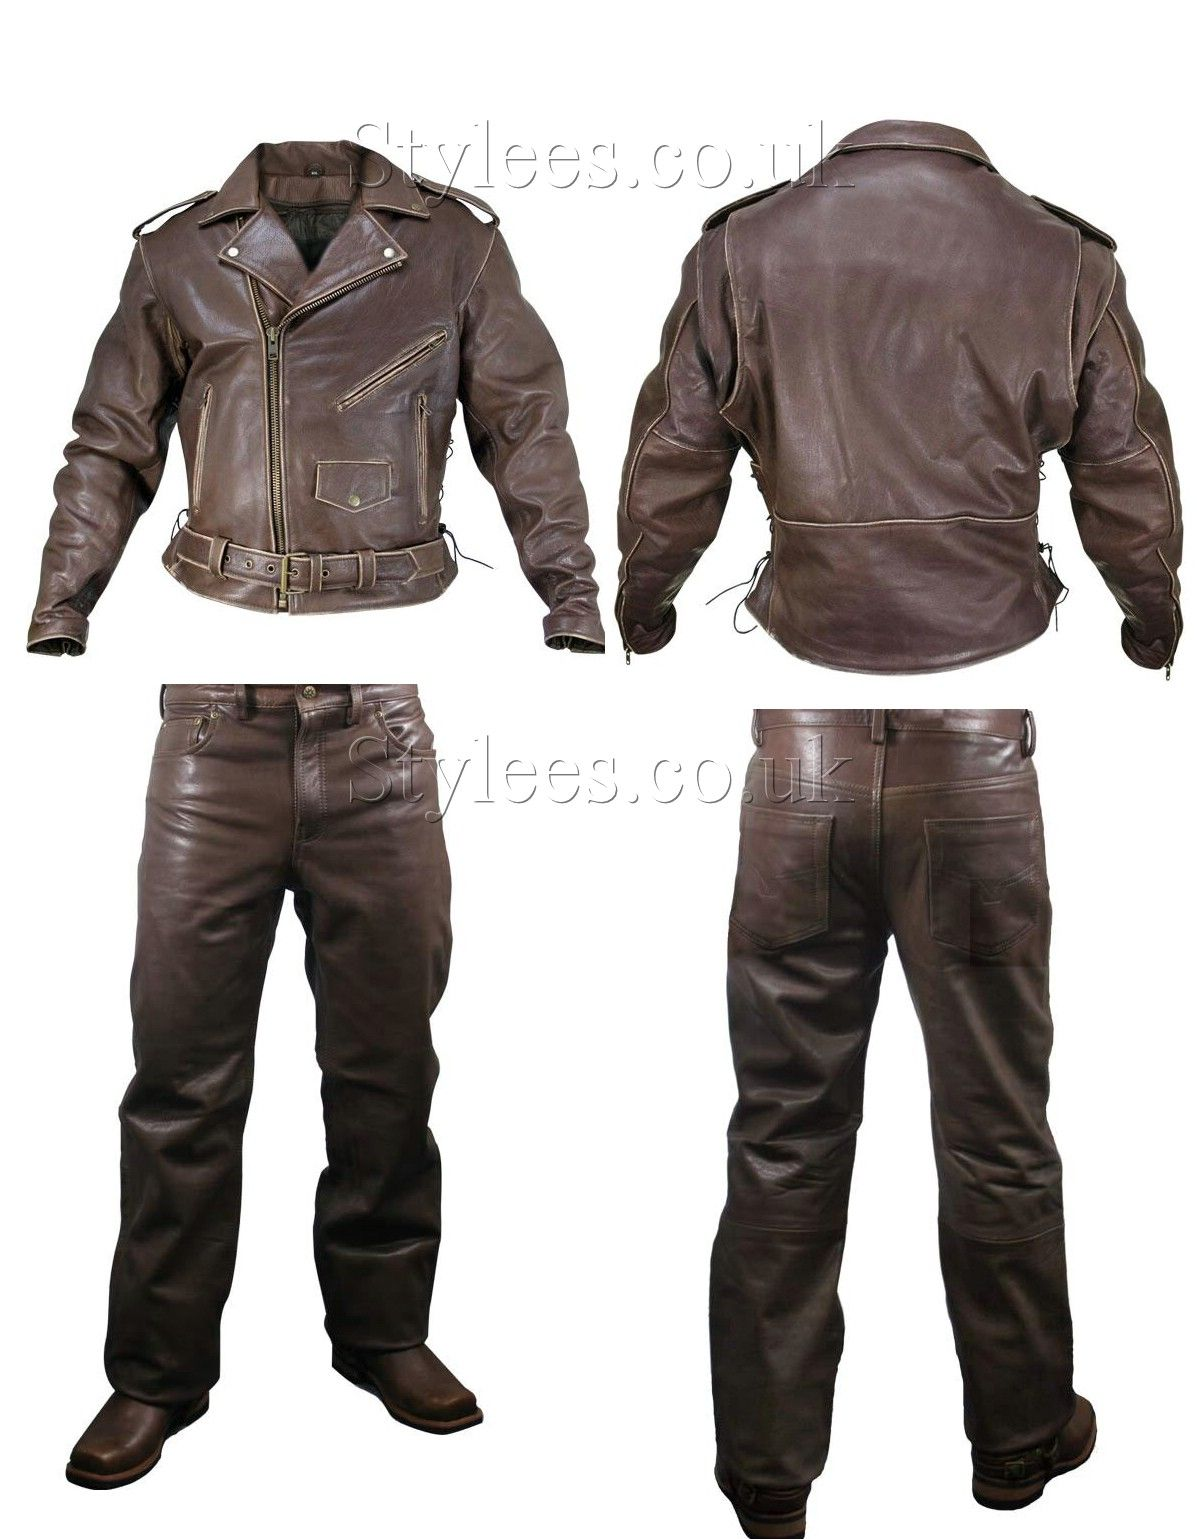 Leather Washed Brown Jacket Motorbiker Rider Touring Bike Jacket